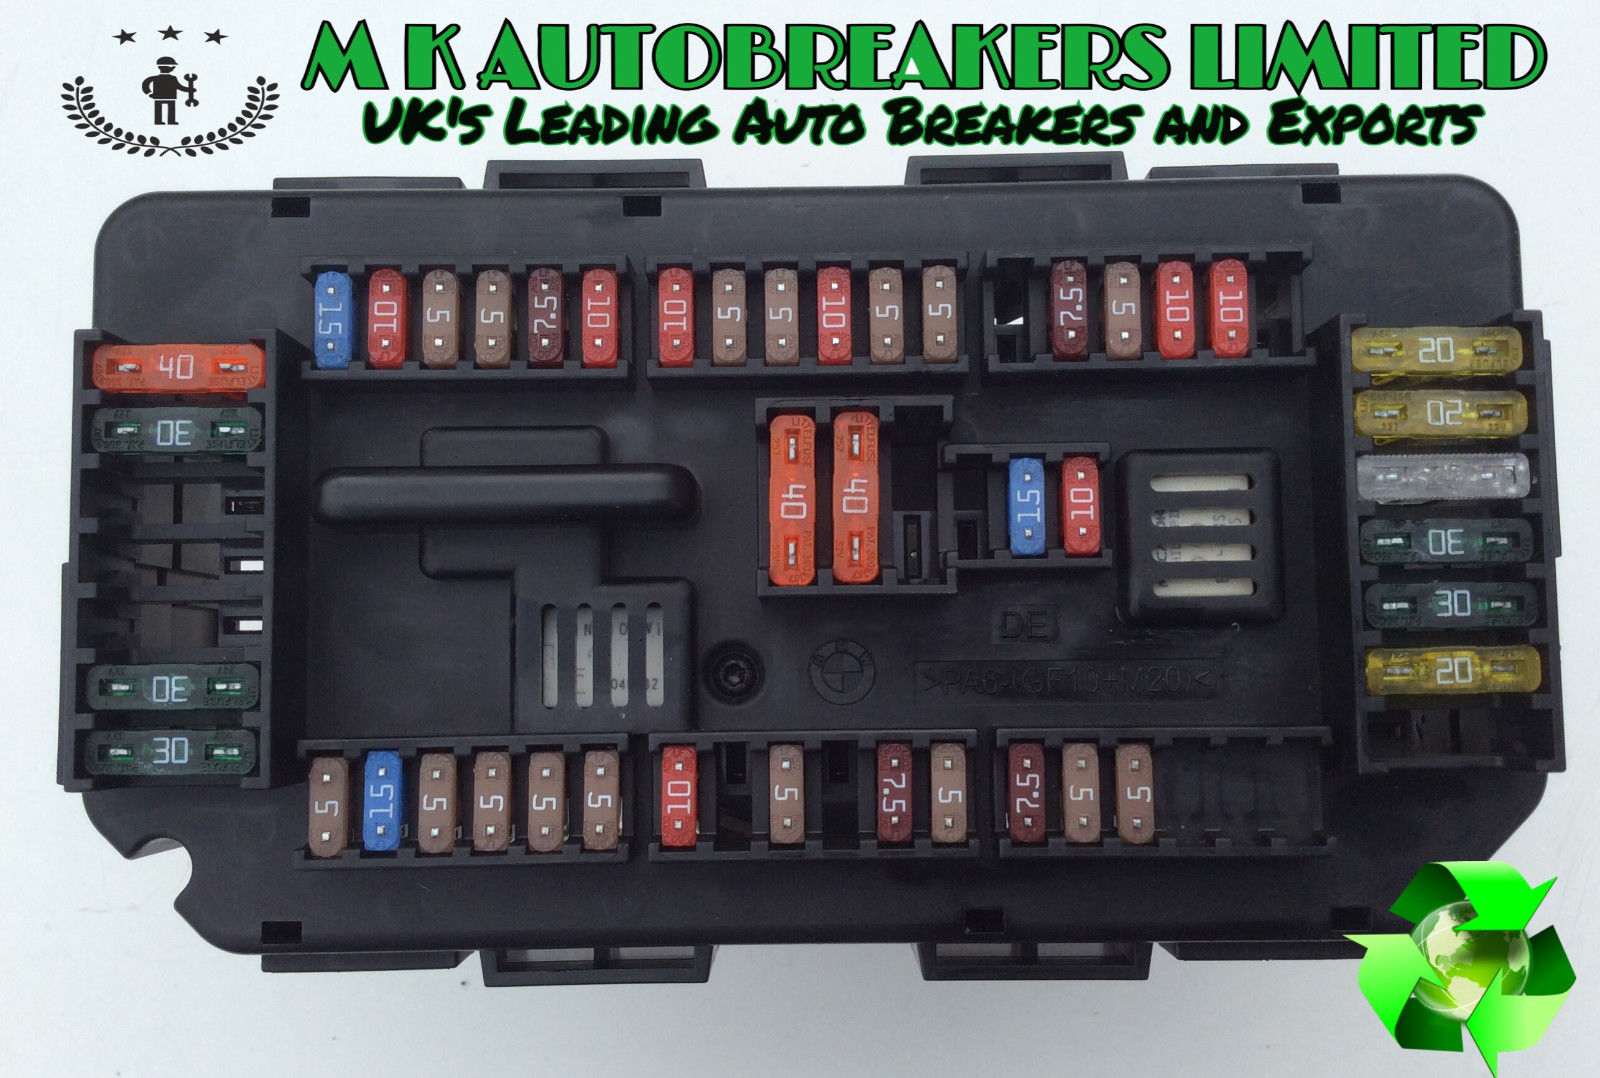 fuse box buy spares for bmw 8 series fuses wiring diagram third levelfuse box buy spares for bmw 8 series fuses wiring library bmw f30 from 12 15